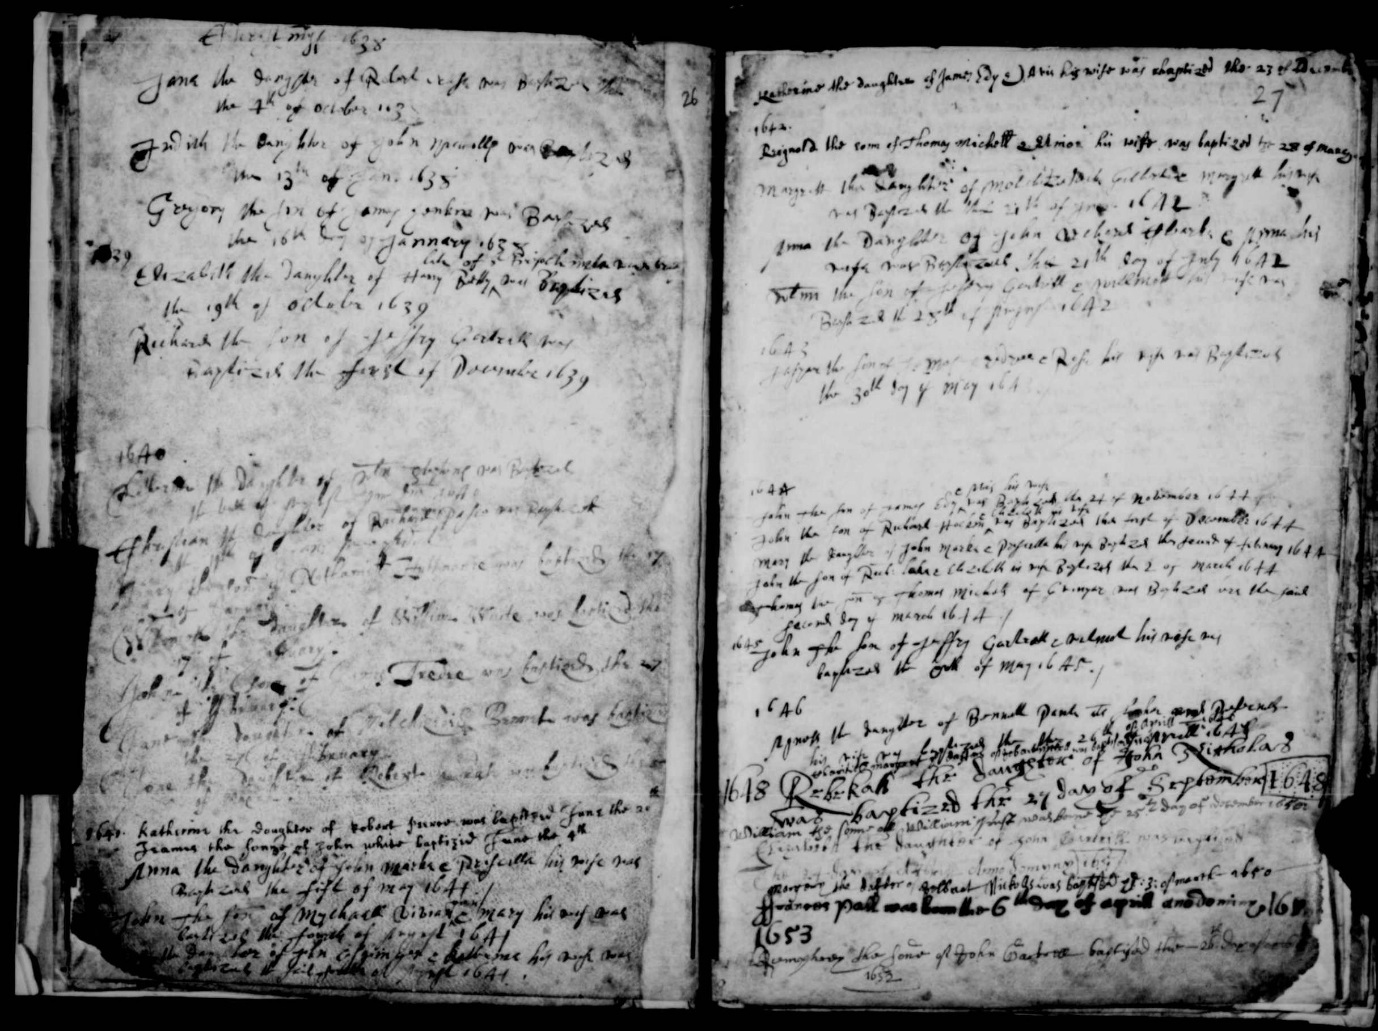 C:\Users\Virginia Rundle\Documents\Ancestry\Northey Moar Files\Tyack and Hockin Files\Baptism of John Hockin 1 Dec 1644.jpg